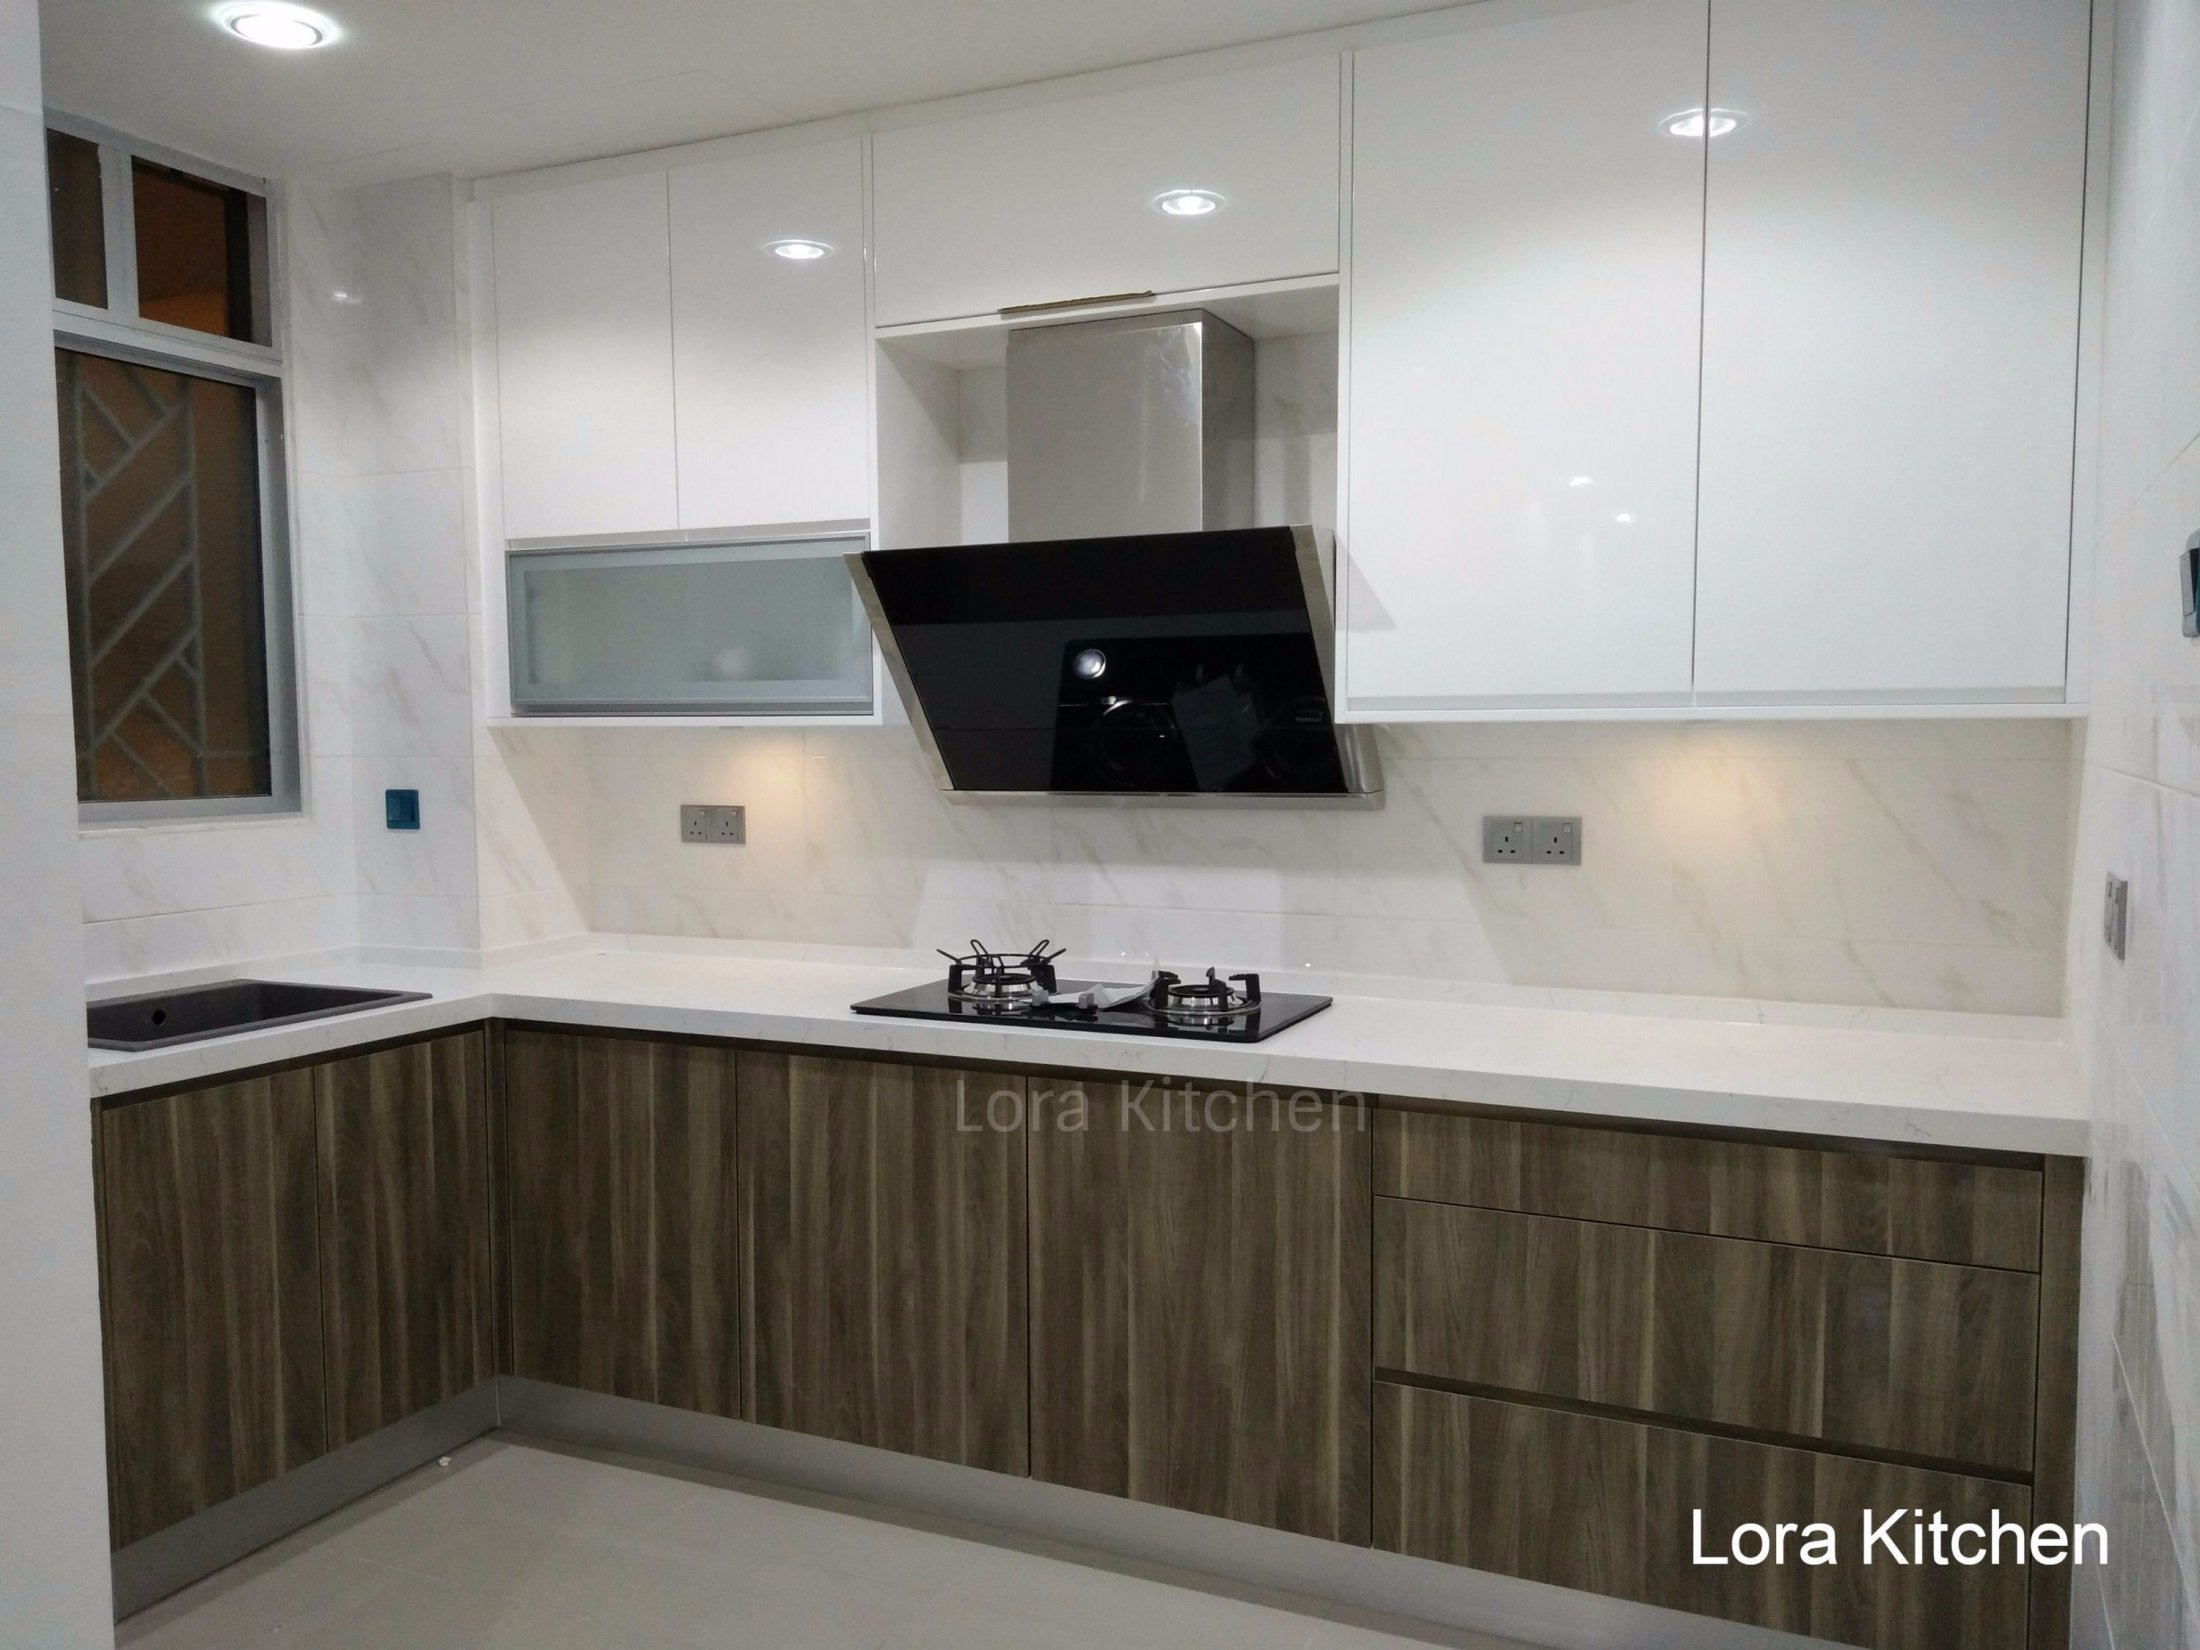 kitchen cabinets design in malaysia stunning modern kitchen cabinet design in malaysia lora 673